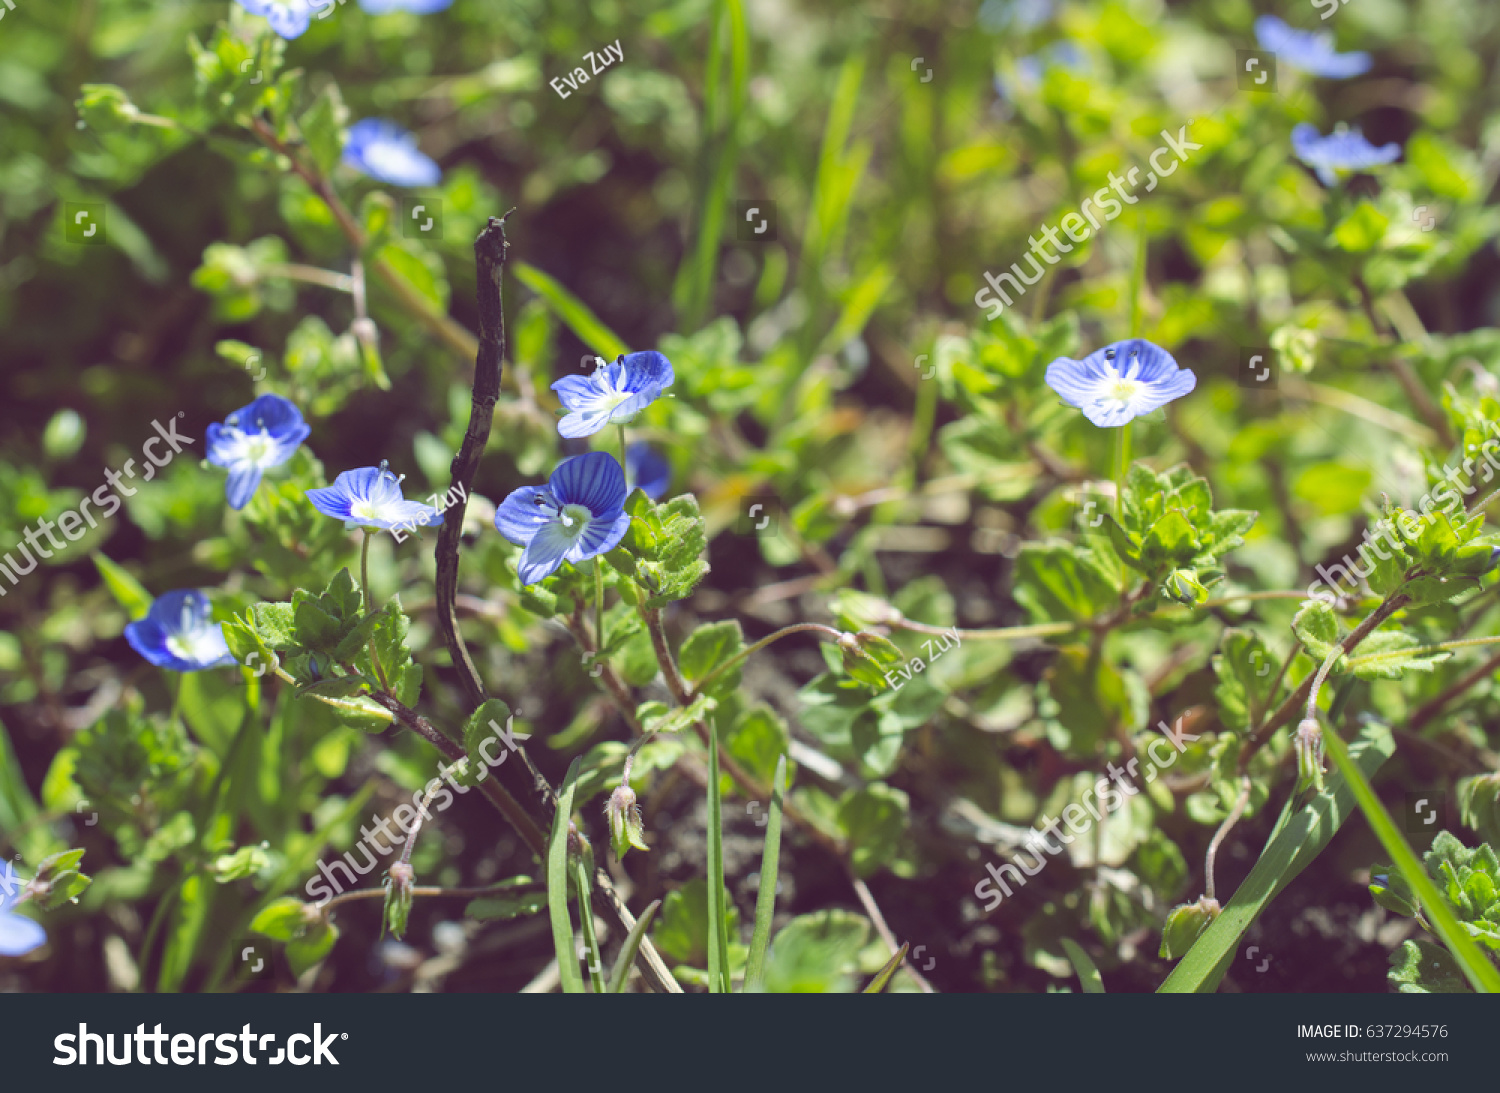 Royalty Free Small Blue Spring Flowers On A 637294576 Stock Photo